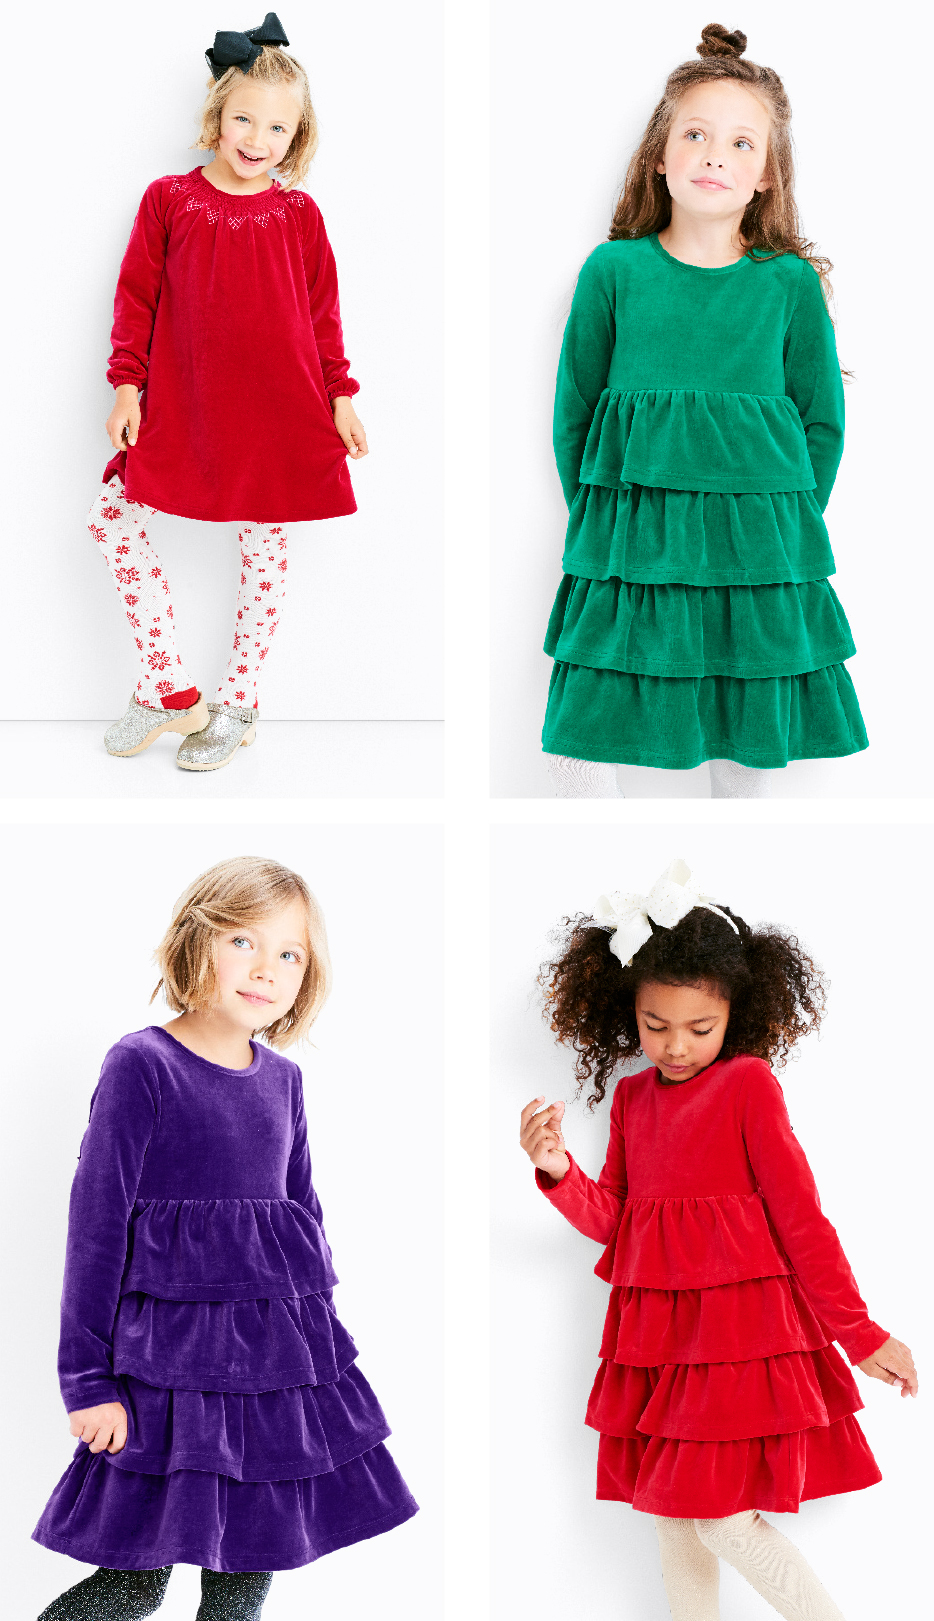 Dresses of the season - Velour Twirly Holiday Dress